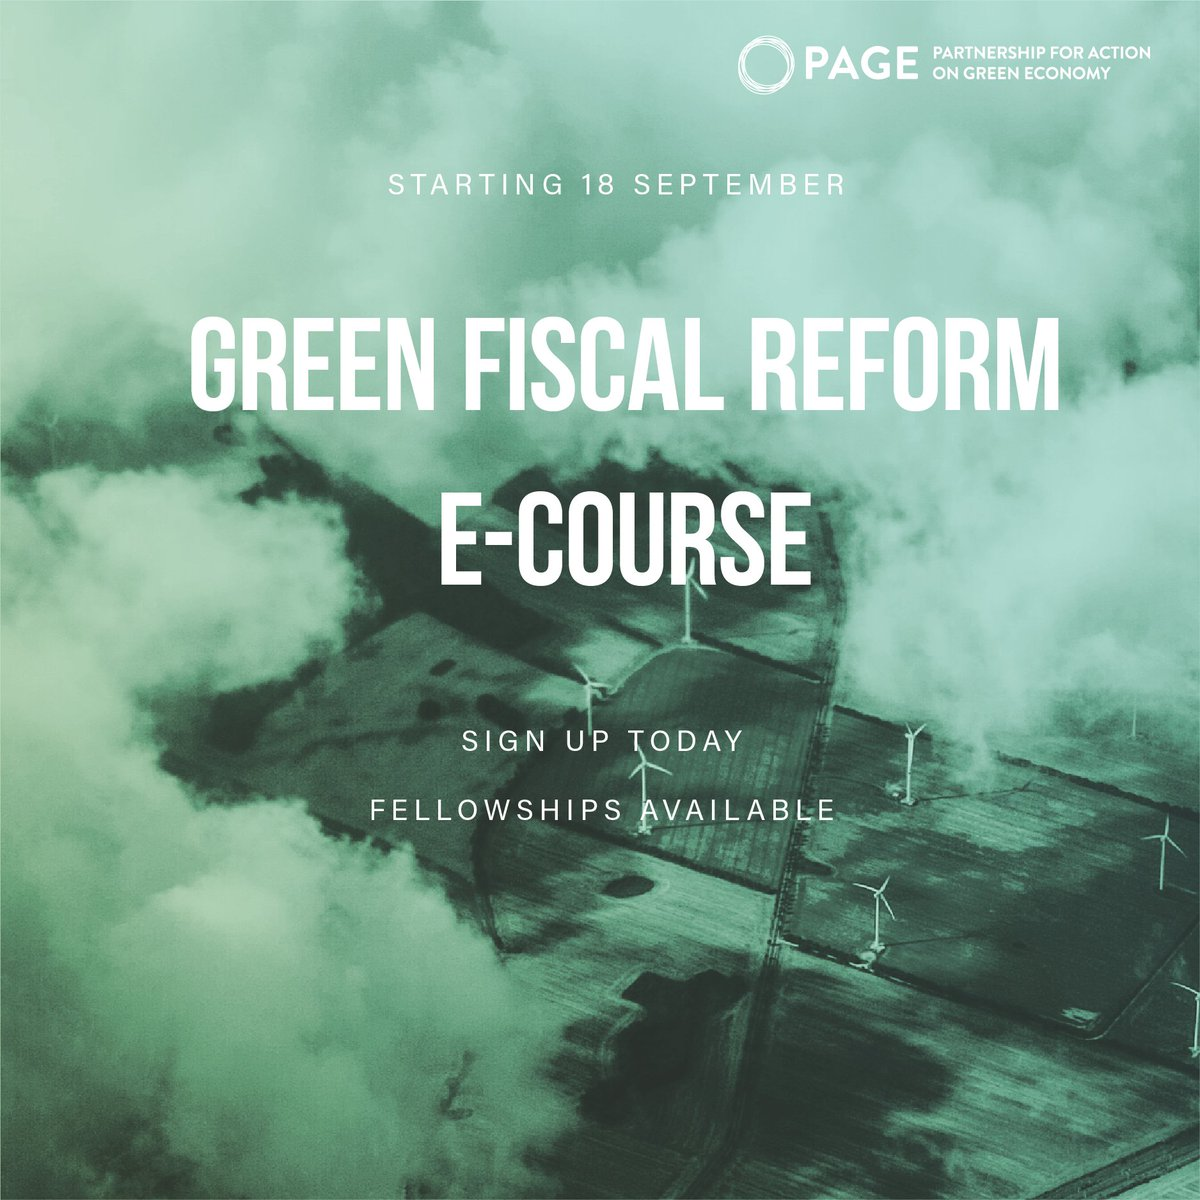 Learn about #Green #Fiscal Reform #ecourse. Join #ecourse from 18 Sep-10 Nov @PAGExchange. Sign up today &gt;  http:// bit.ly/greenfiscalref orm &nbsp; …  #SDGs<br>http://pic.twitter.com/6uU2rlVwNB